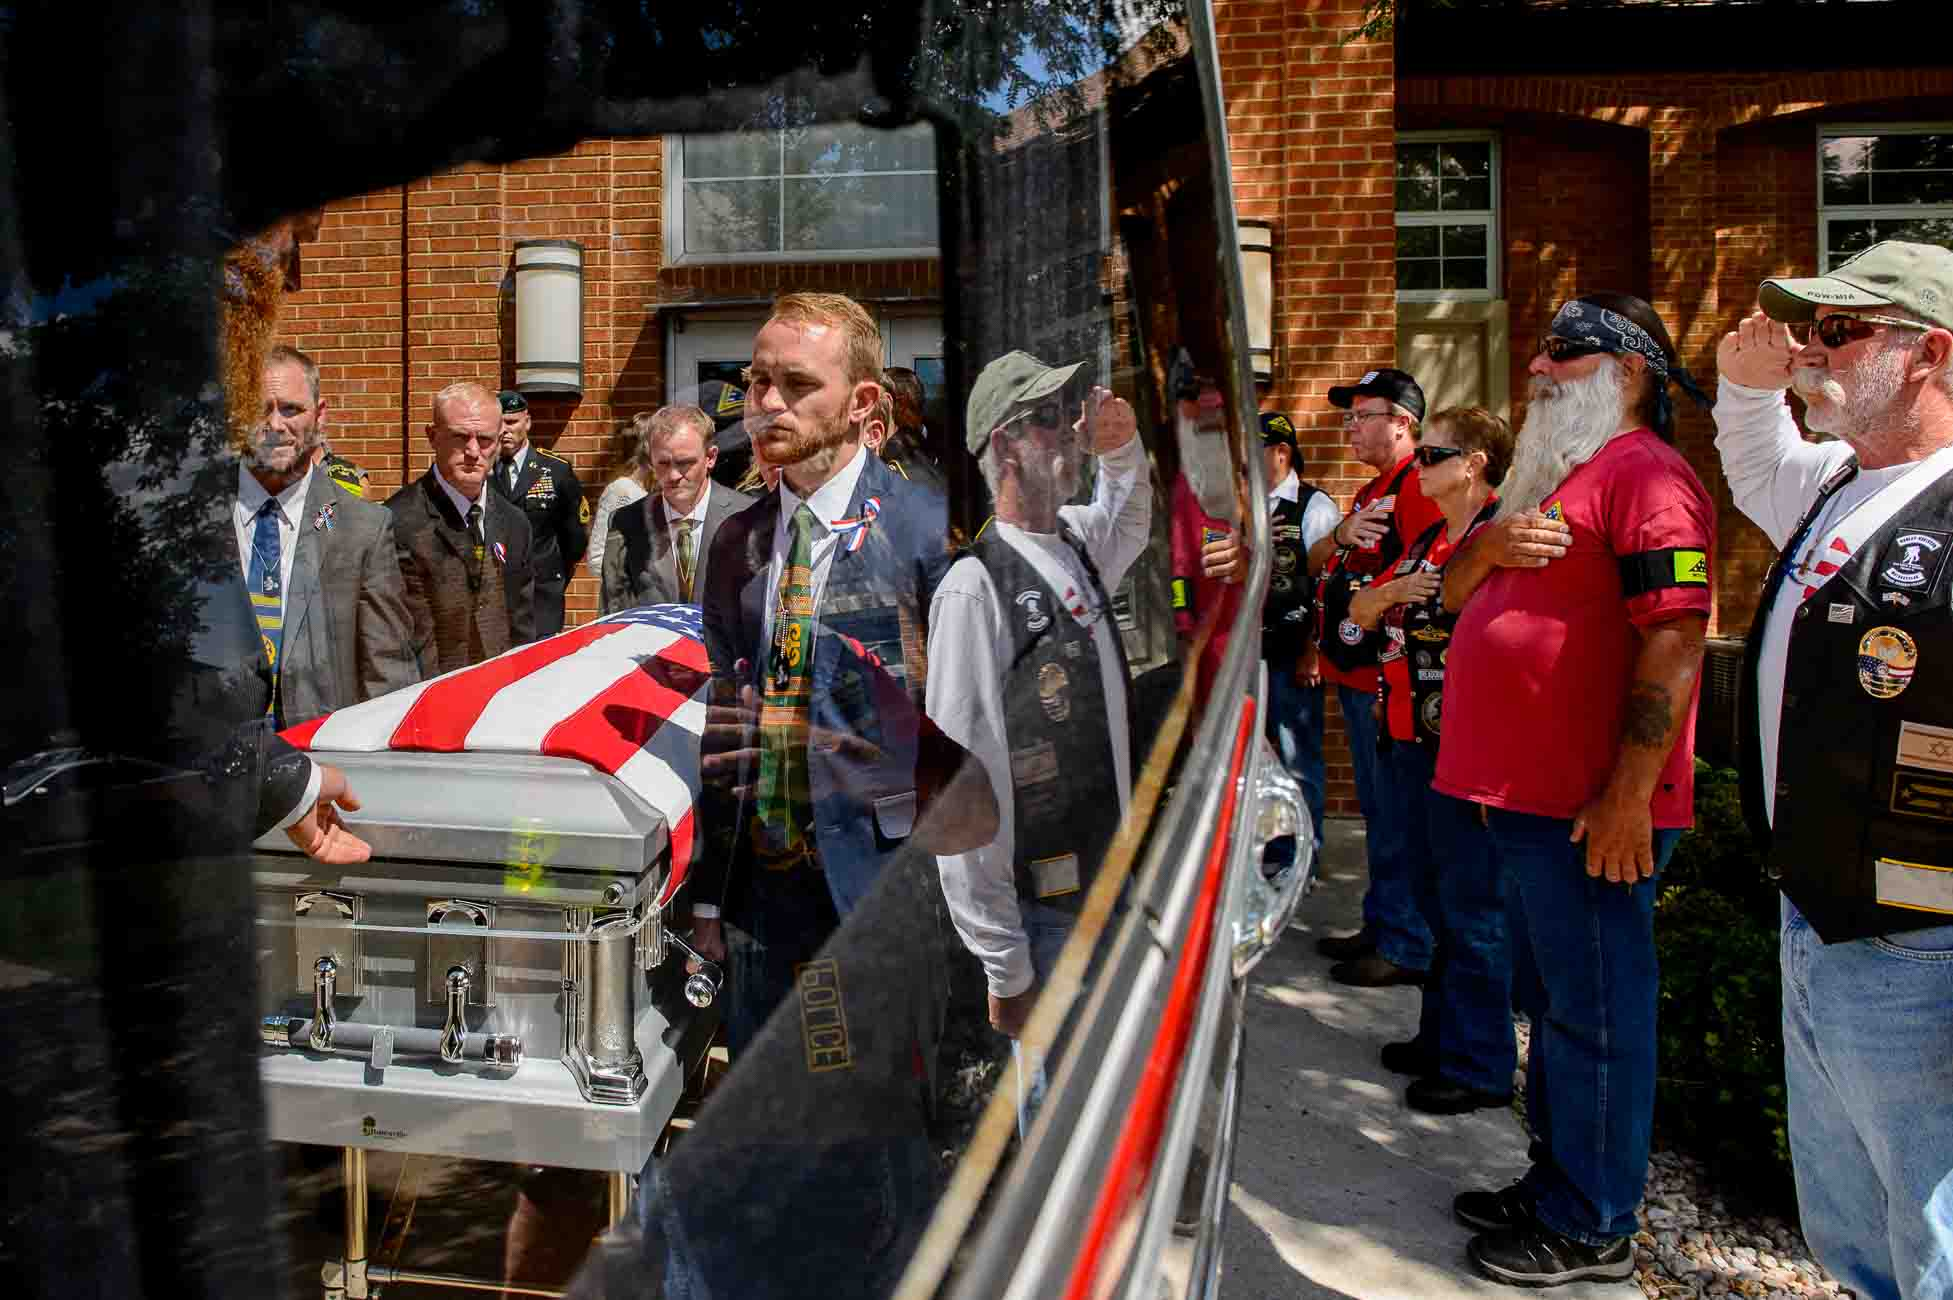 (Trent Nelson | The Salt Lake Tribune) Pallbearers at the funeral for fallen soldier Aaron Butler, in Monticello Saturday August 26, 2017. At right are members of the Patriot Guard Riders.